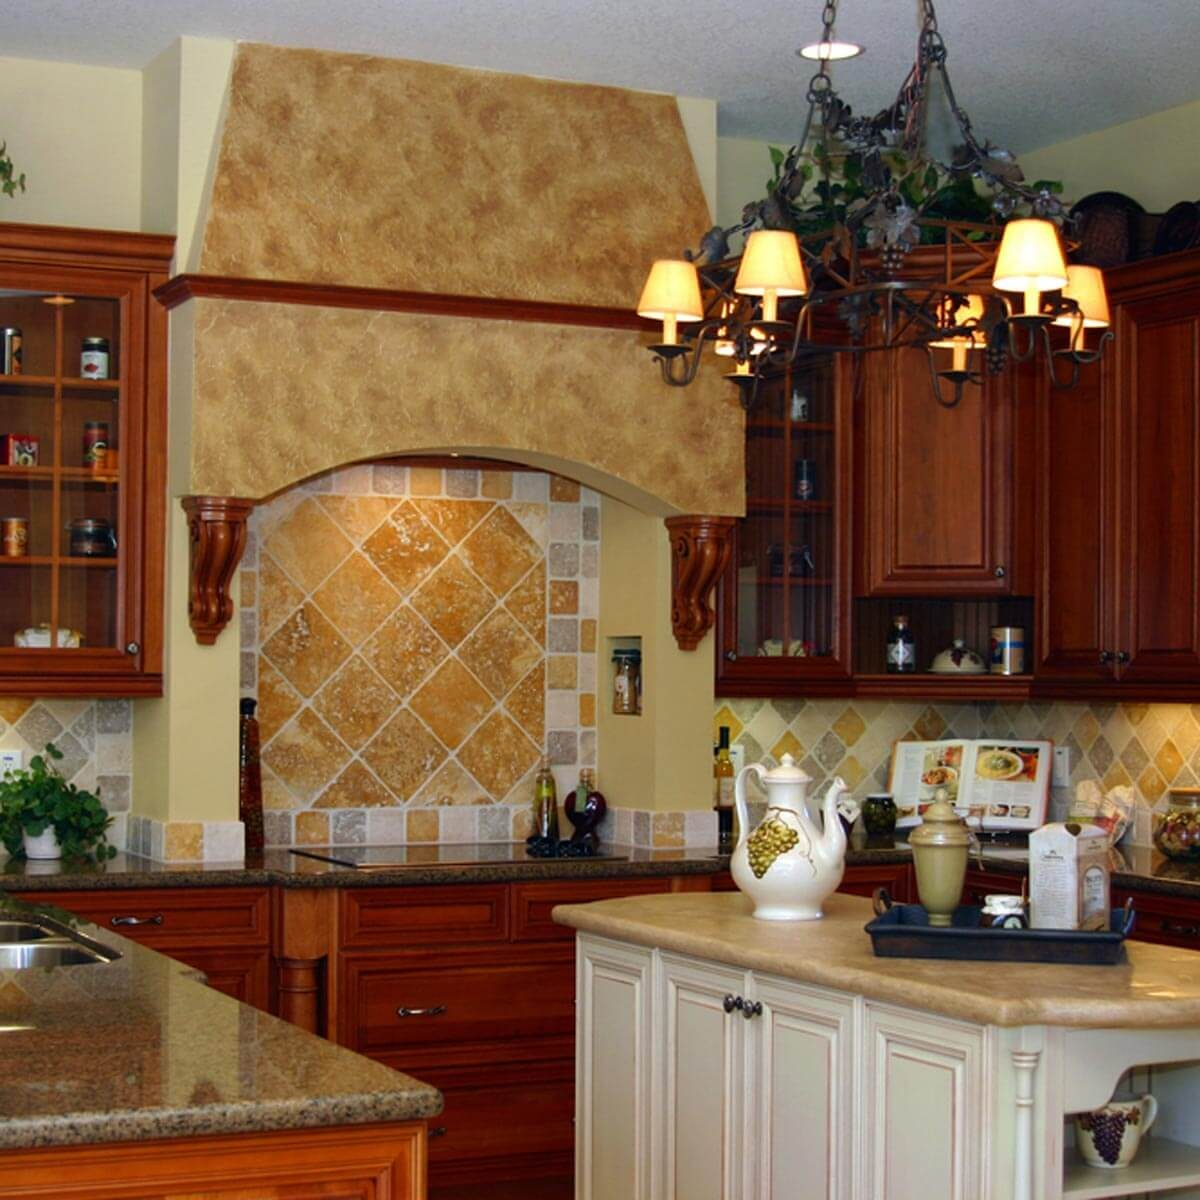 Tuscan-Inspired Kitchen